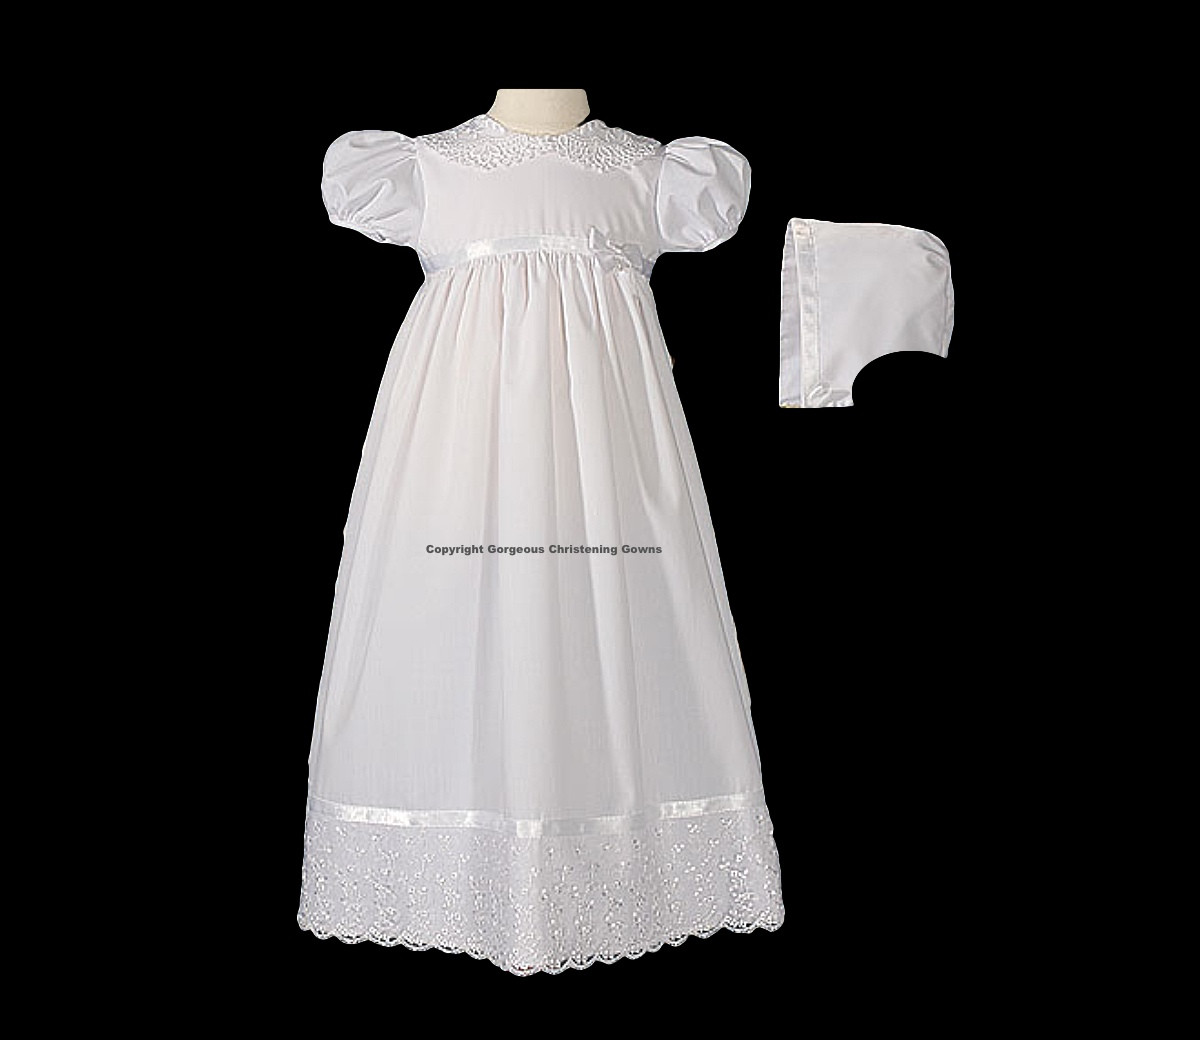 Lace Christening Dress New Maya Christening Gown W Lace Of Innovative 42 Images Lace Christening Dress